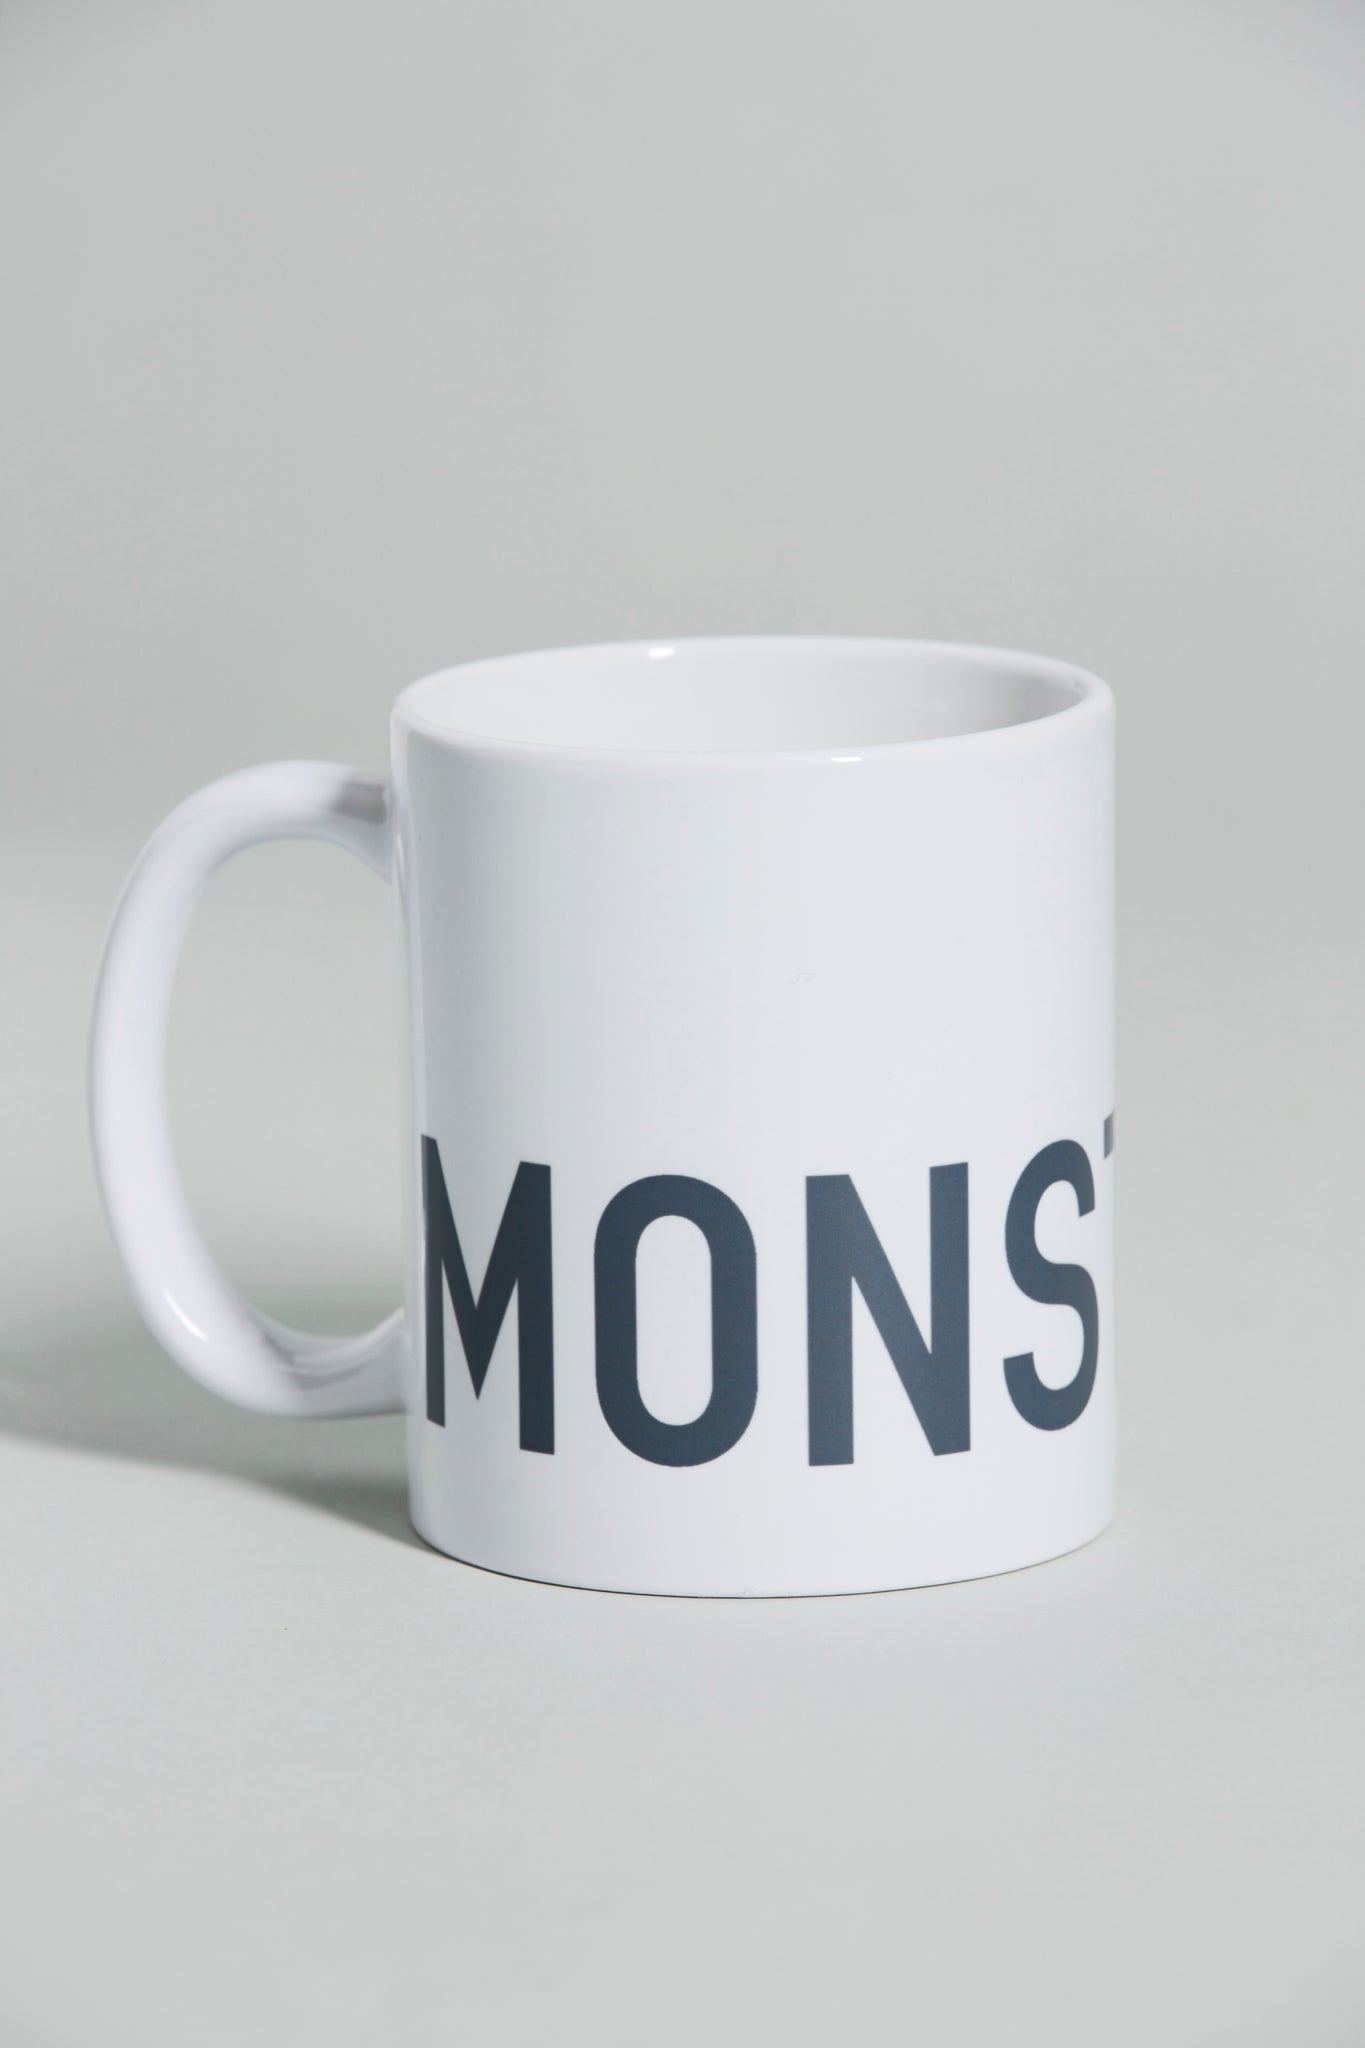 15 Years Anniversary Mug : MONSTERS